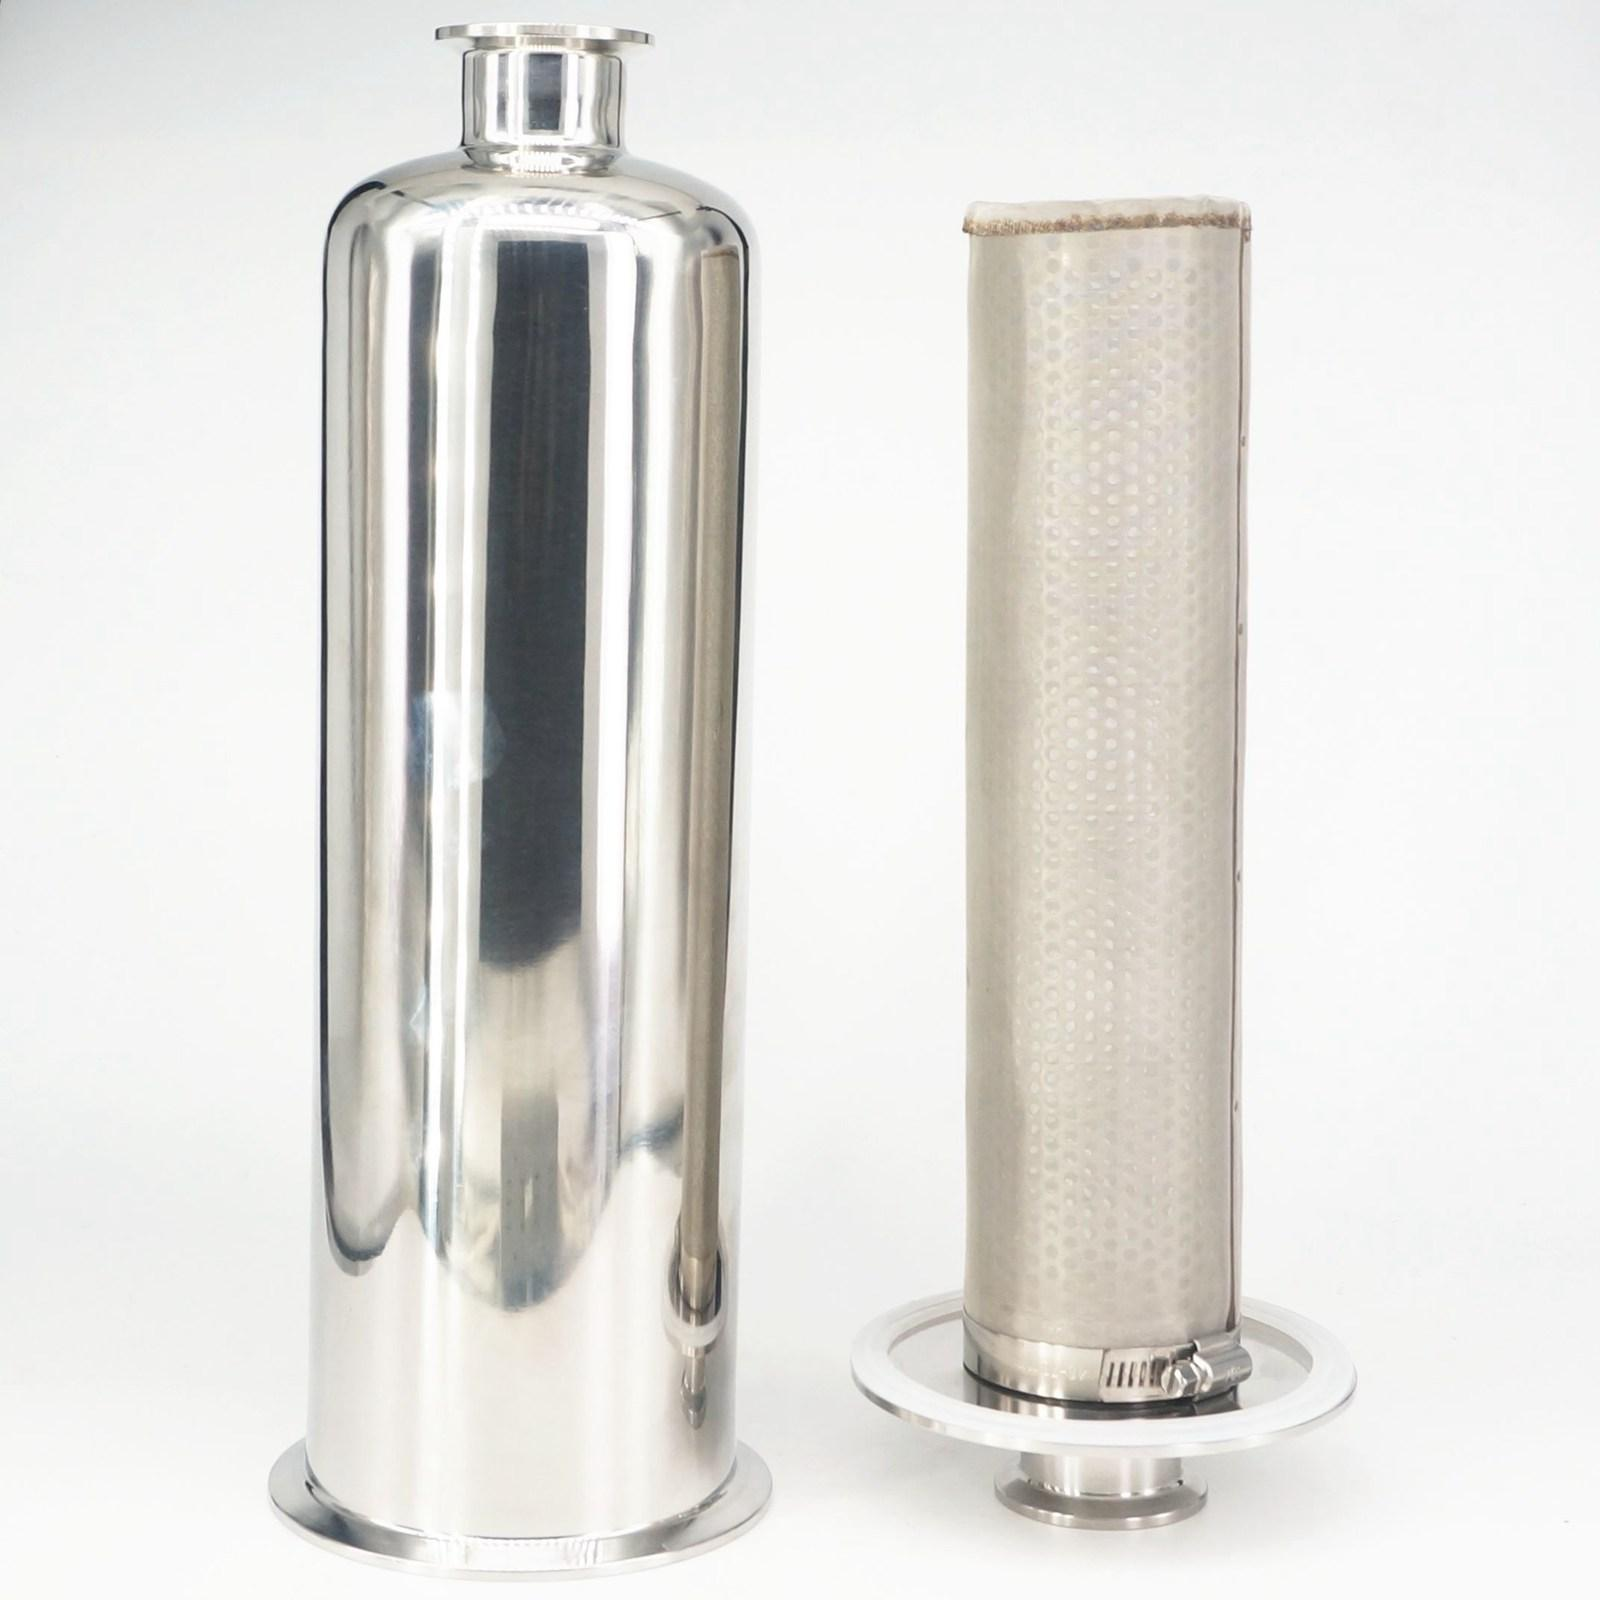 Fit Tube OD 19/25/32/38/51/63mm Pipe Tri Clamp 304/316 Stainless Steel In line Filter Strainer Brewing 100Mesh